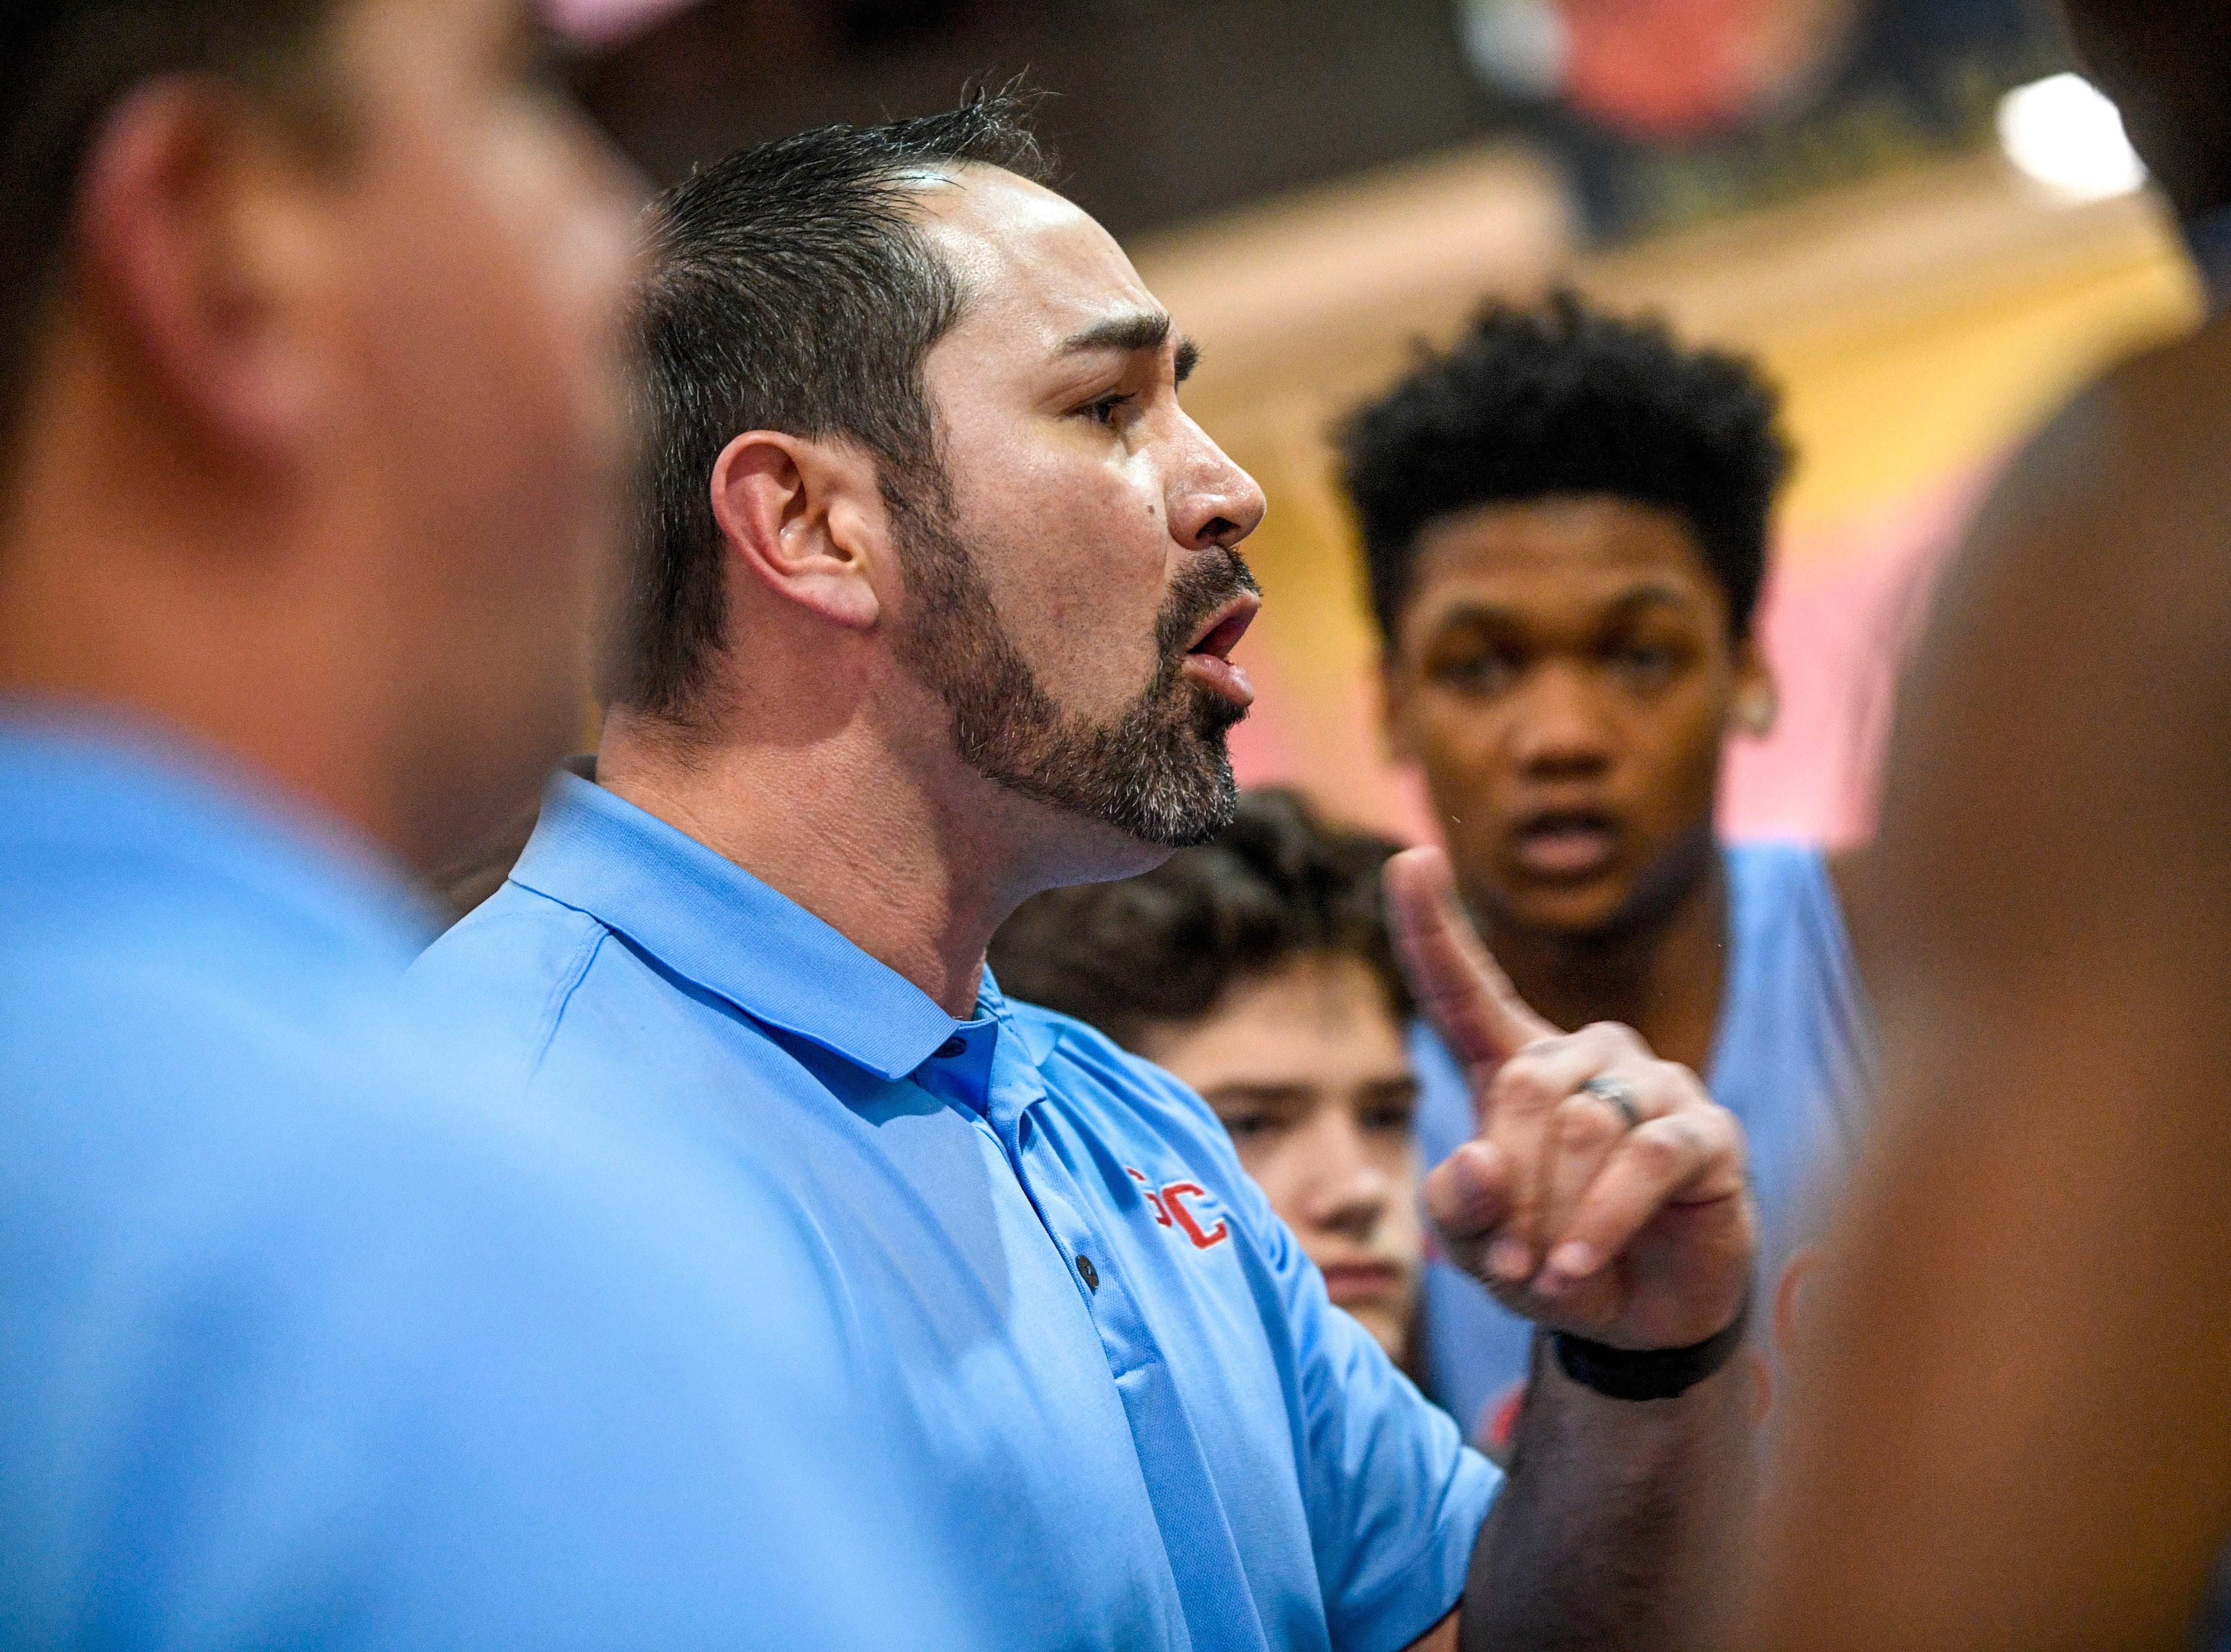 Gibson County head coach Justin Lowery speaks to his players in a timeout in a TSSAA basketball game between Peabody and Gibson County at Peabody High School in Trenton, Tenn., on Friday, Feb. 8, 2019.